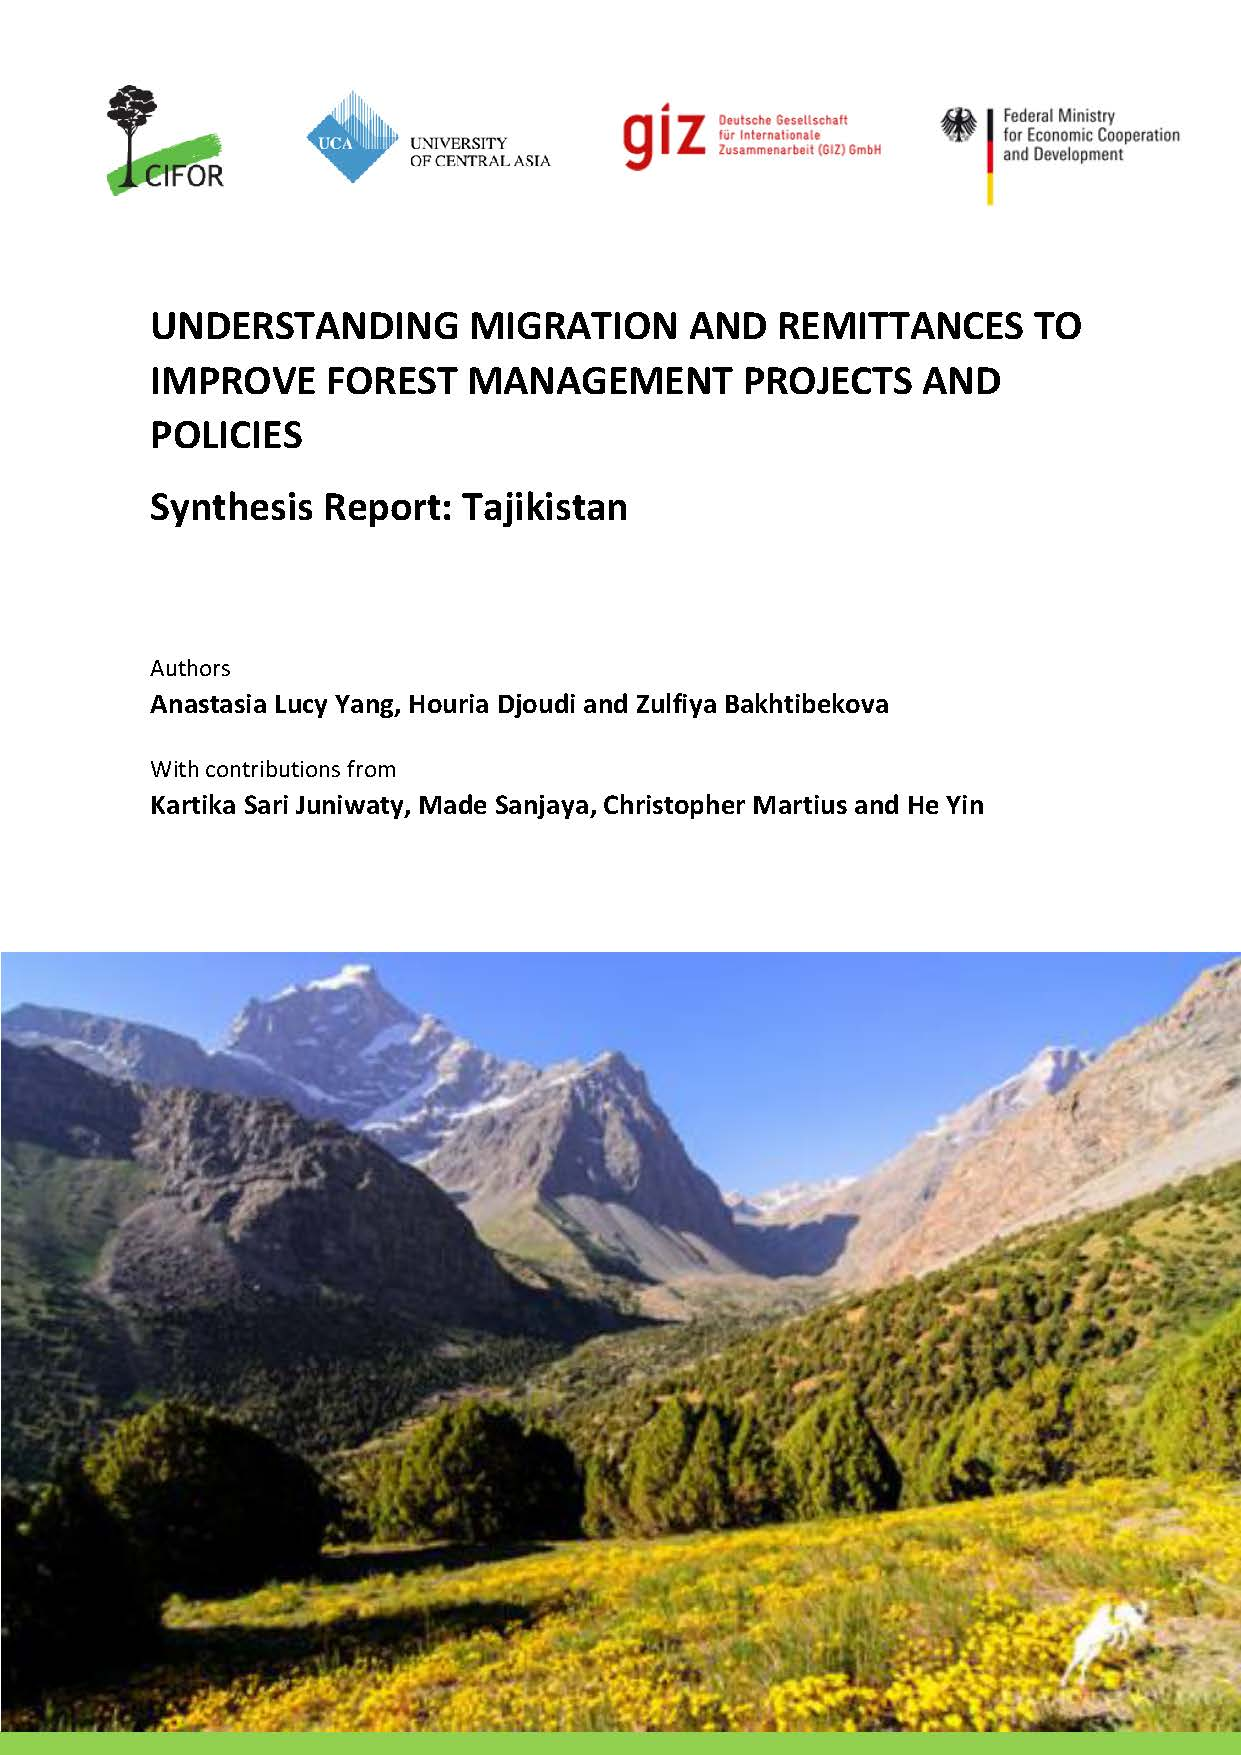 Understanding migration and remittance to improve forest management projects and policies: Synthesis Report: Tajikistan